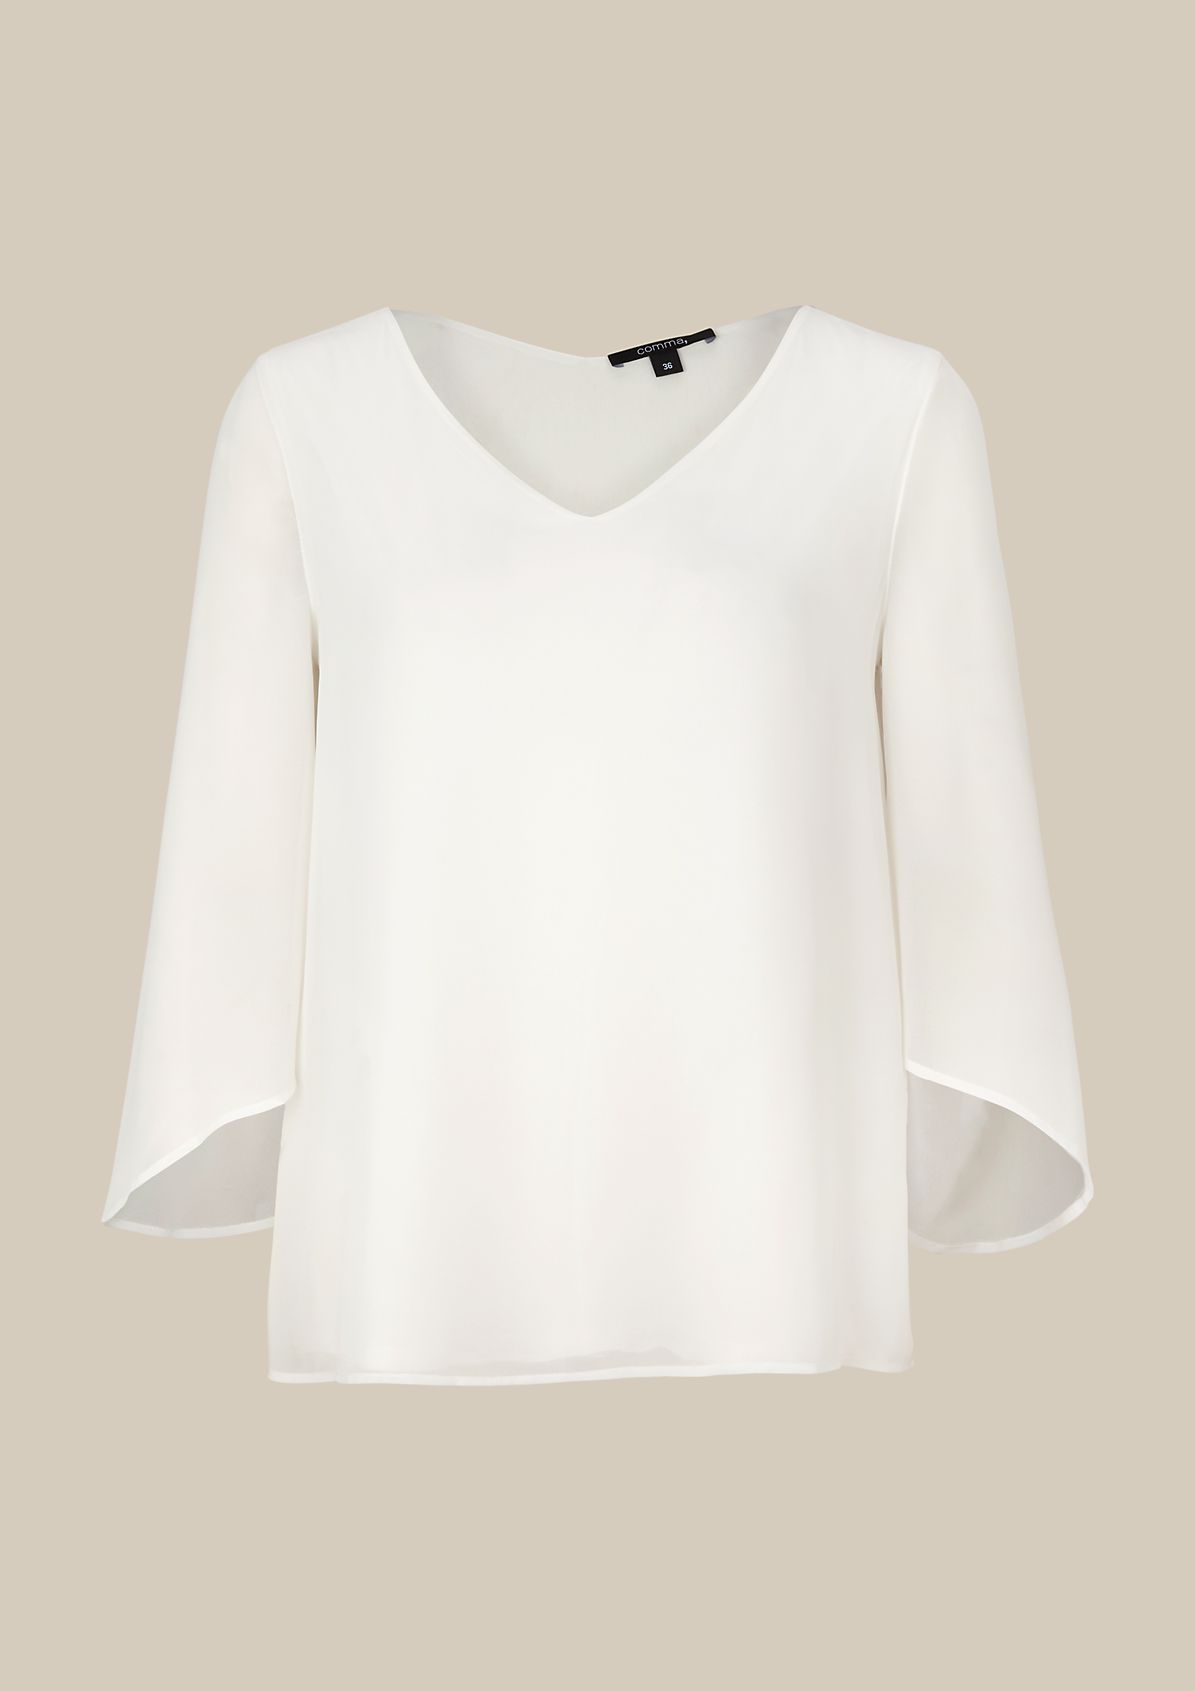 Delicate blouse with 3/4-length sleeves and extravagant details from s.Oliver